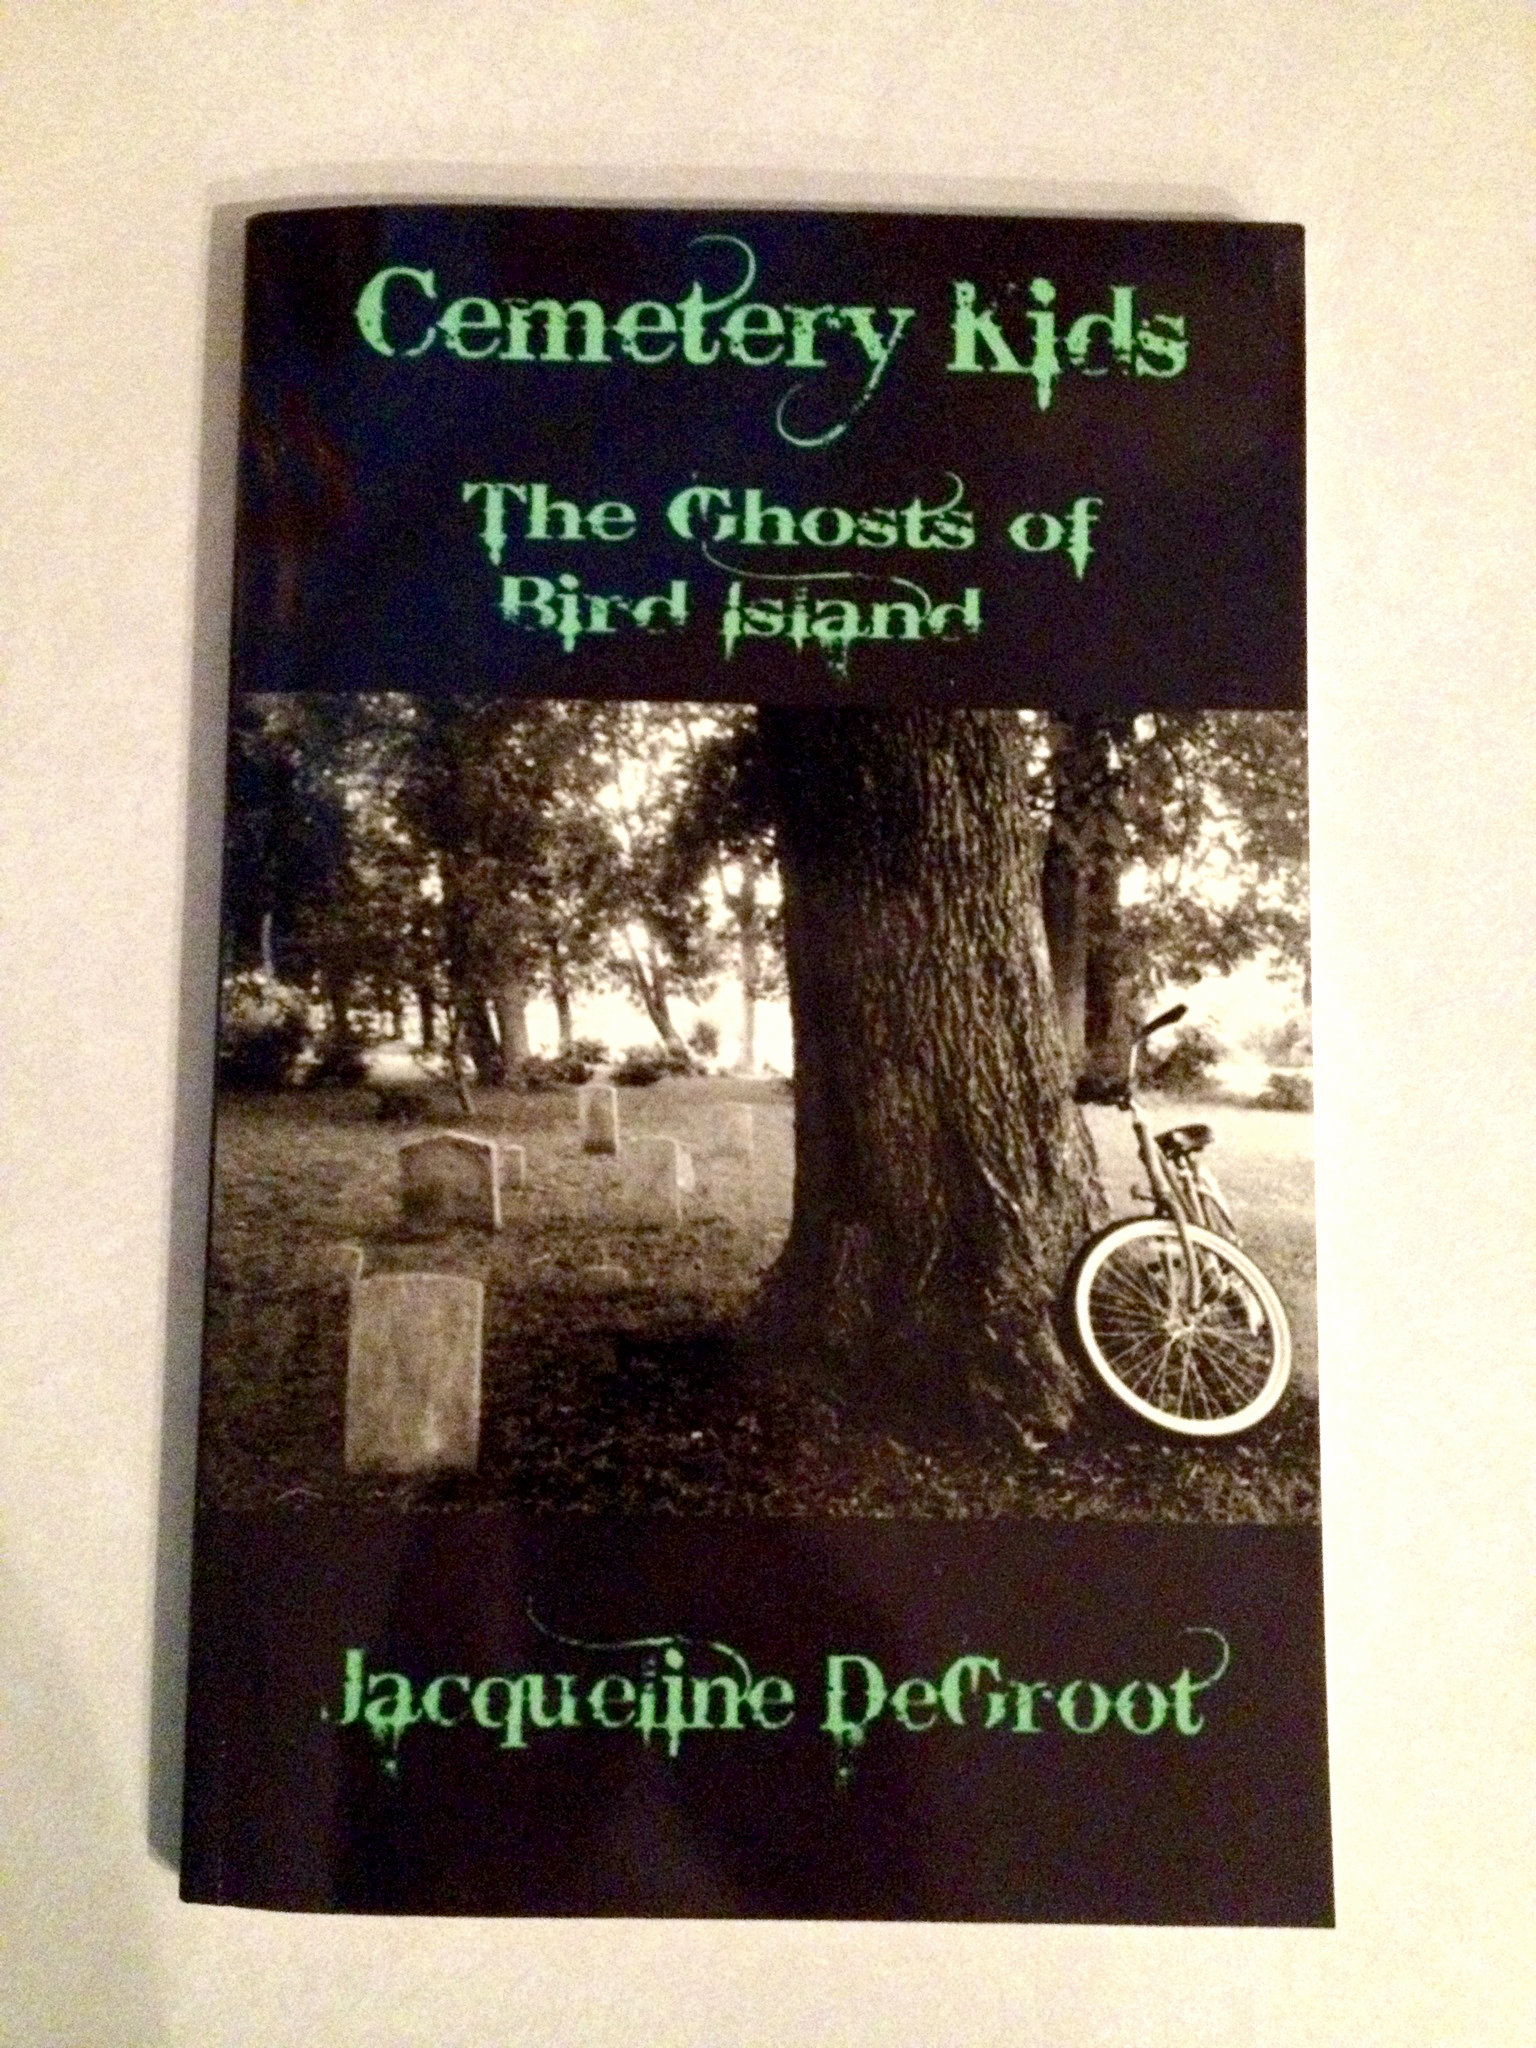 Cemetery Kids is OUT